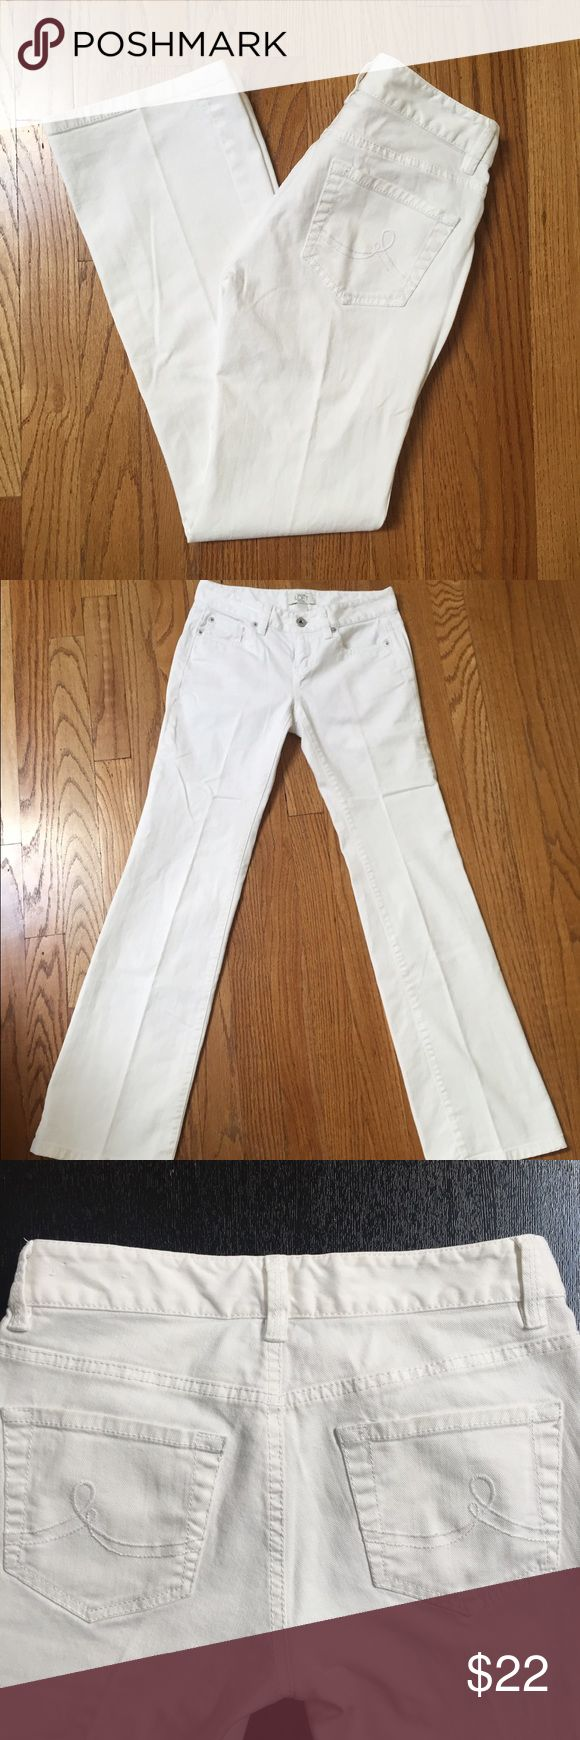 "LOFT petites white bootcut jeans Ann Taylor Loft bootcut jeans in crisp white denim. A great addition to your spring wardrobe. Inseam 28"". In excellent used condition. LOFT Jeans Boot Cut"